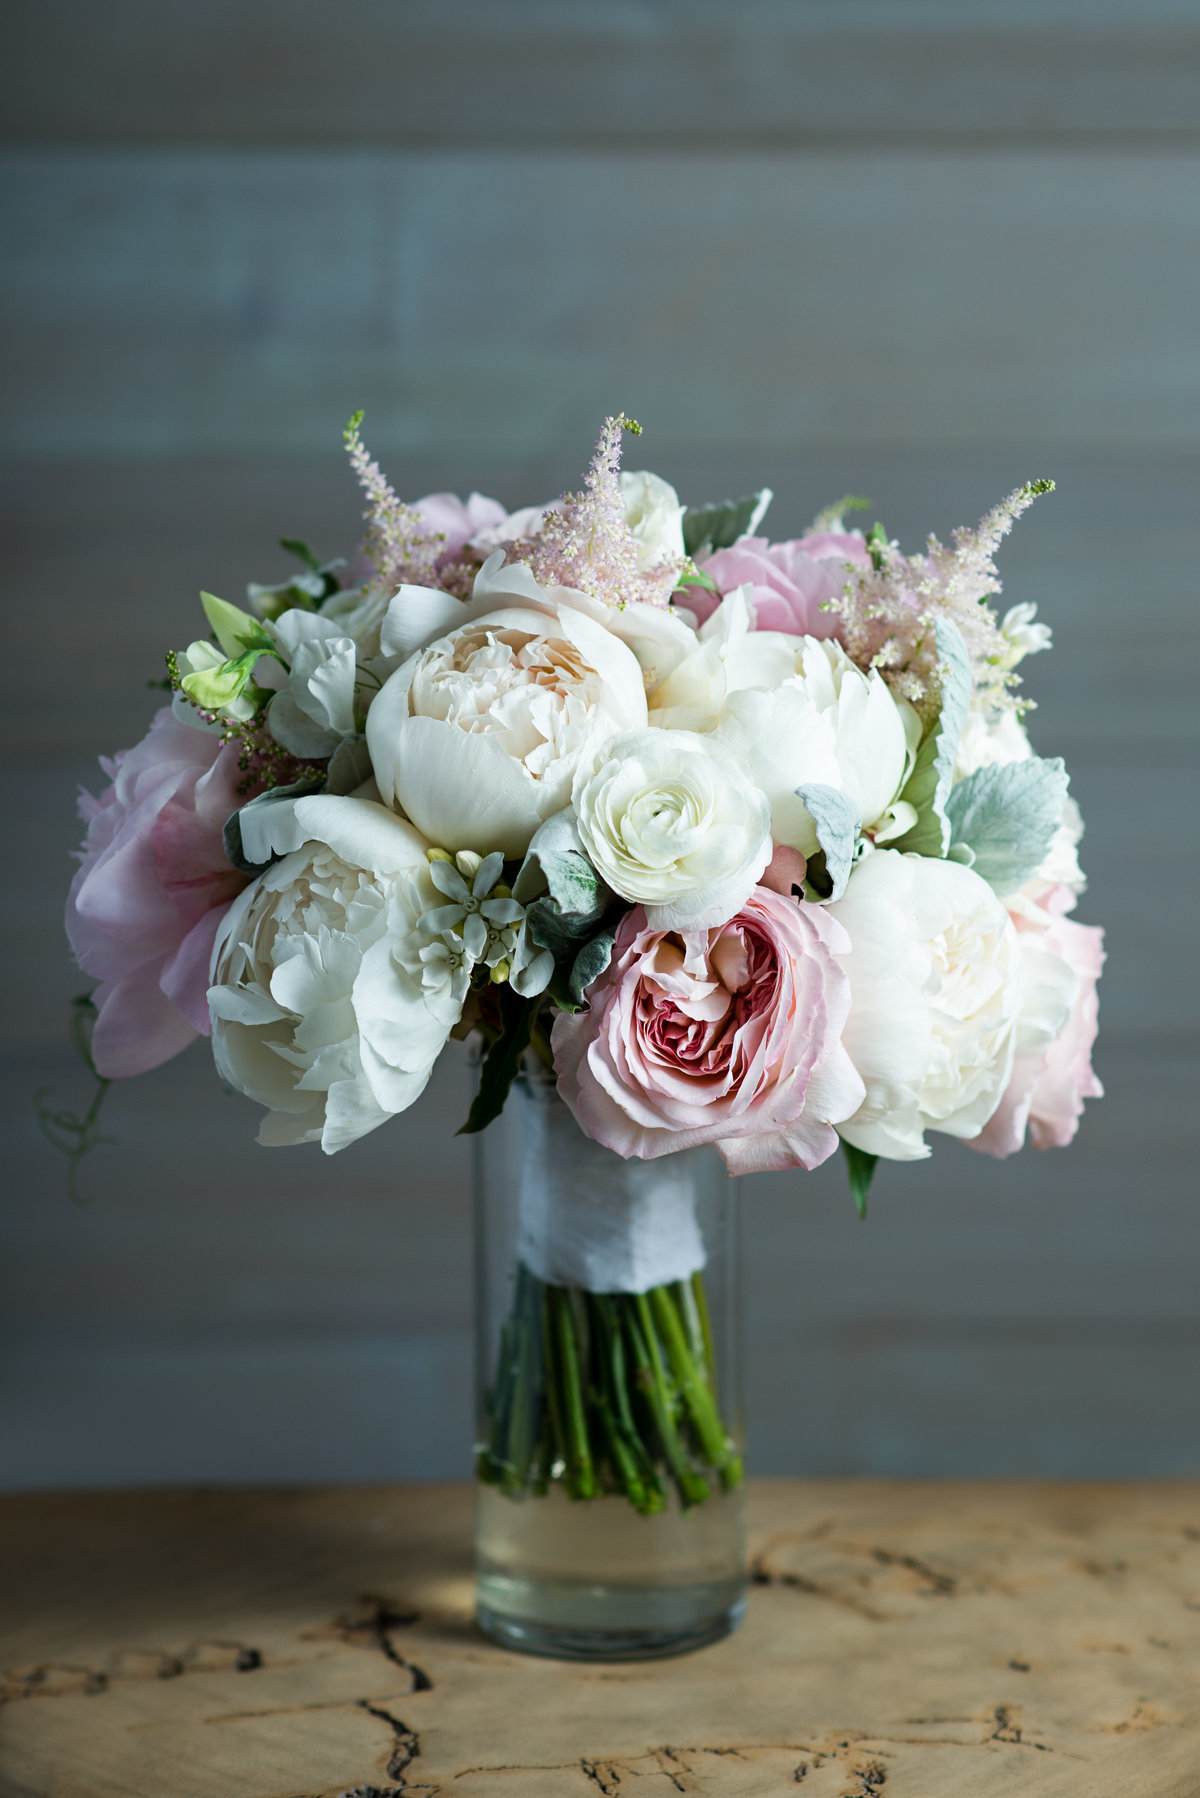 Pastel Wedding Bouquet filled pinks, cremes, and light green colors